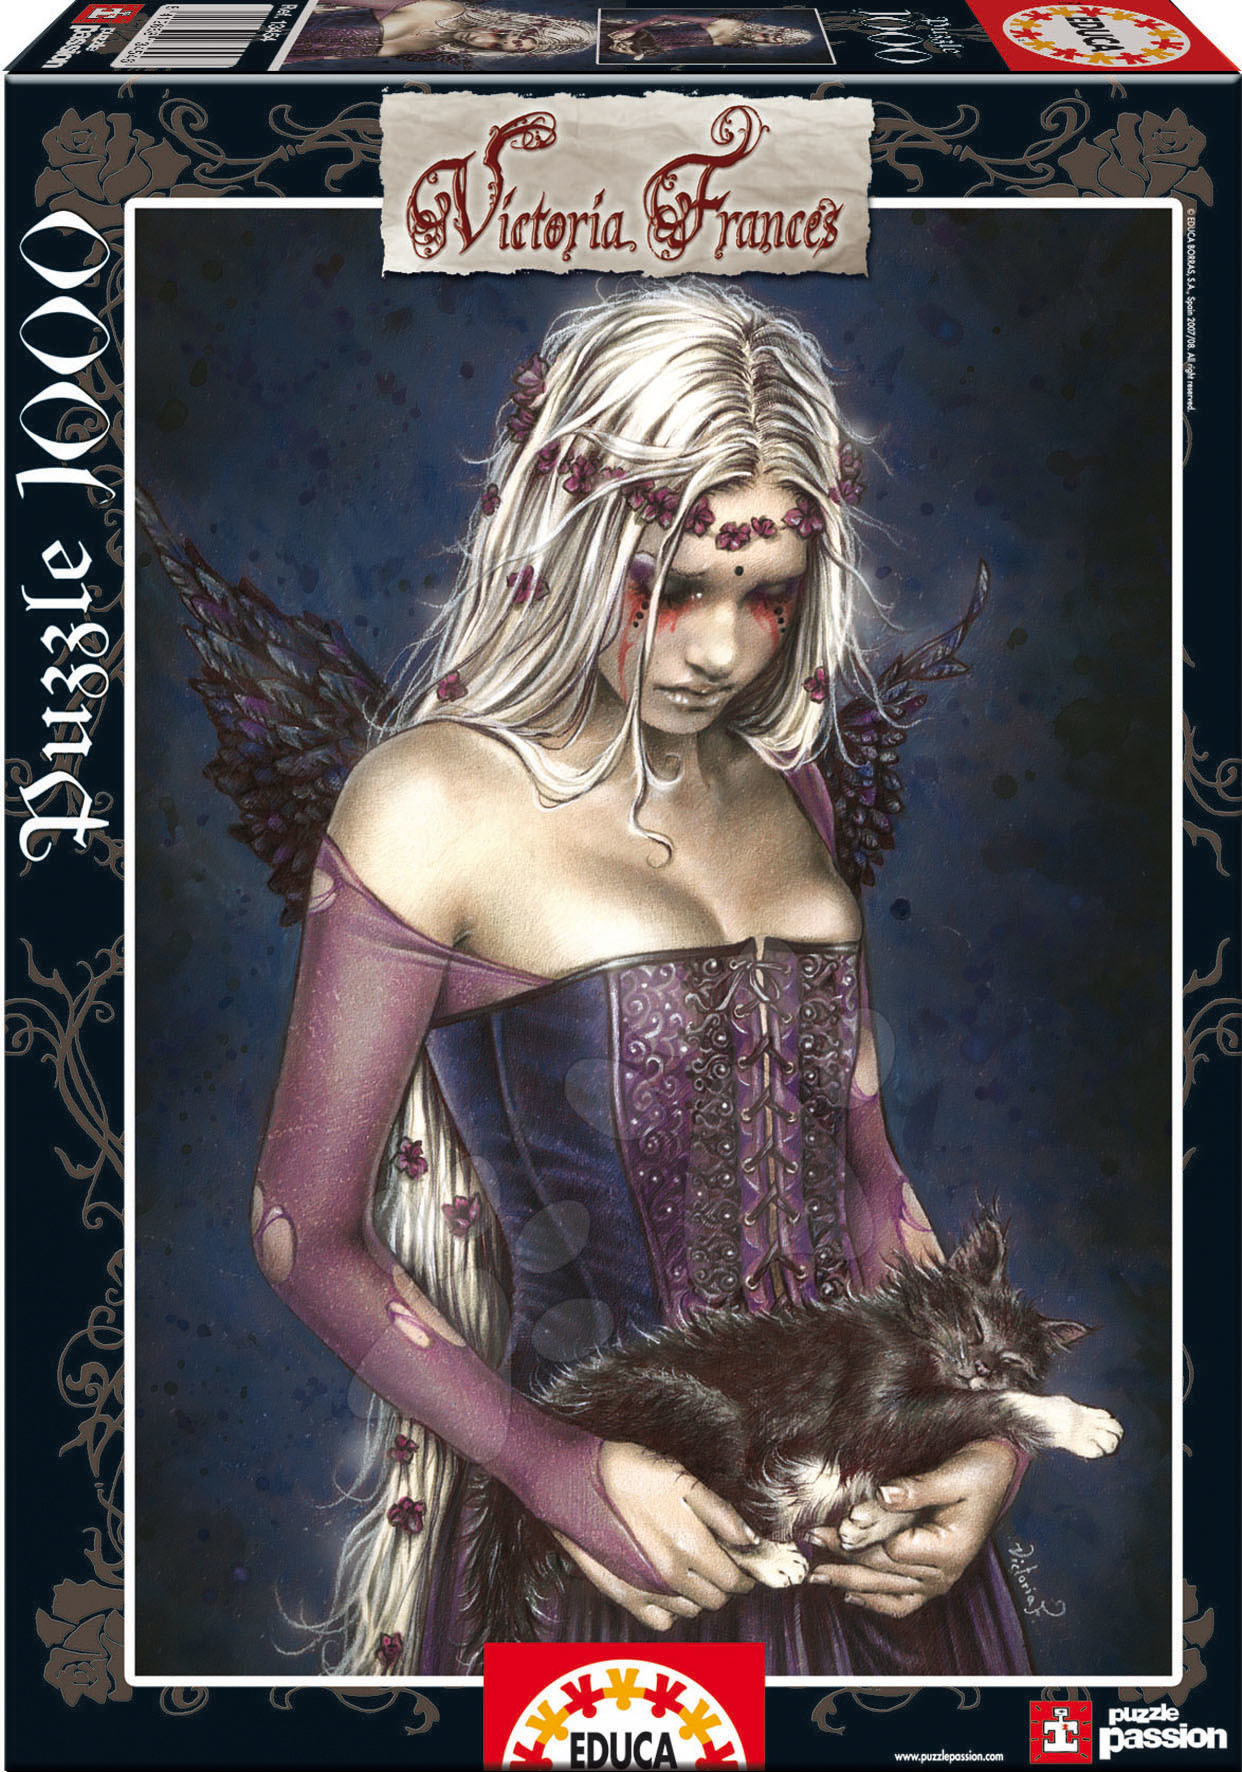 Produse vechi - Puzzle Angel of death Educa 1000 piese